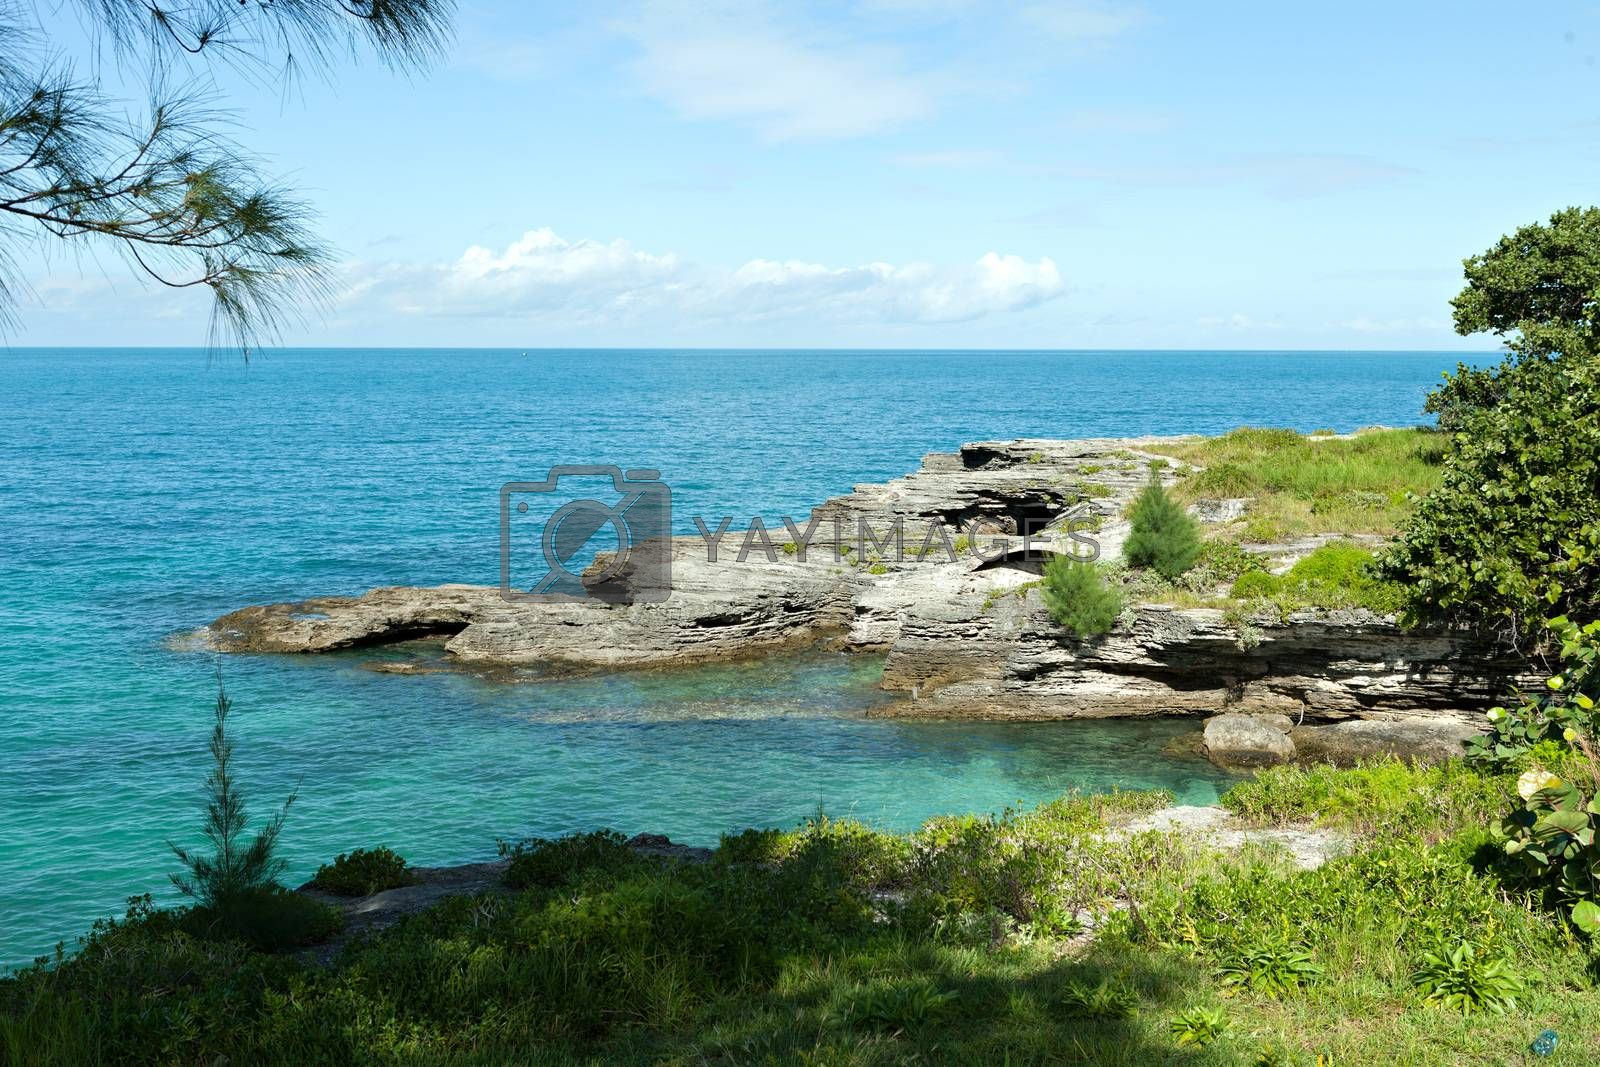 Bermuda coast with aqua blue tropical waters and rock formations complete with small caves.